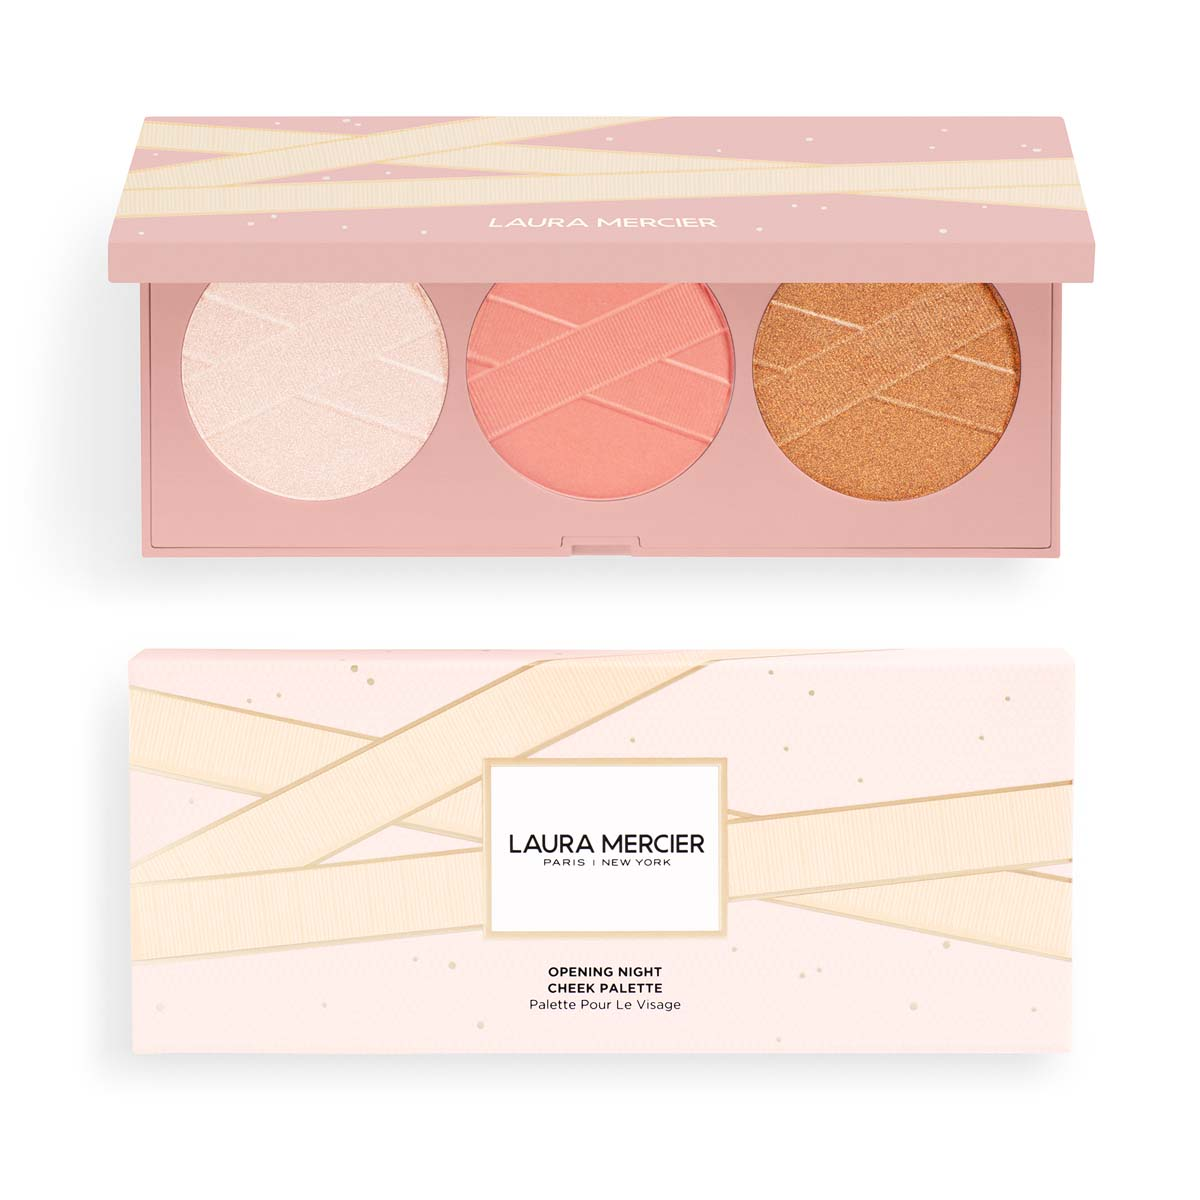 OPENING NIGHT CHEEK PALETTE (PALETA PARA LAS MEJILLAS)